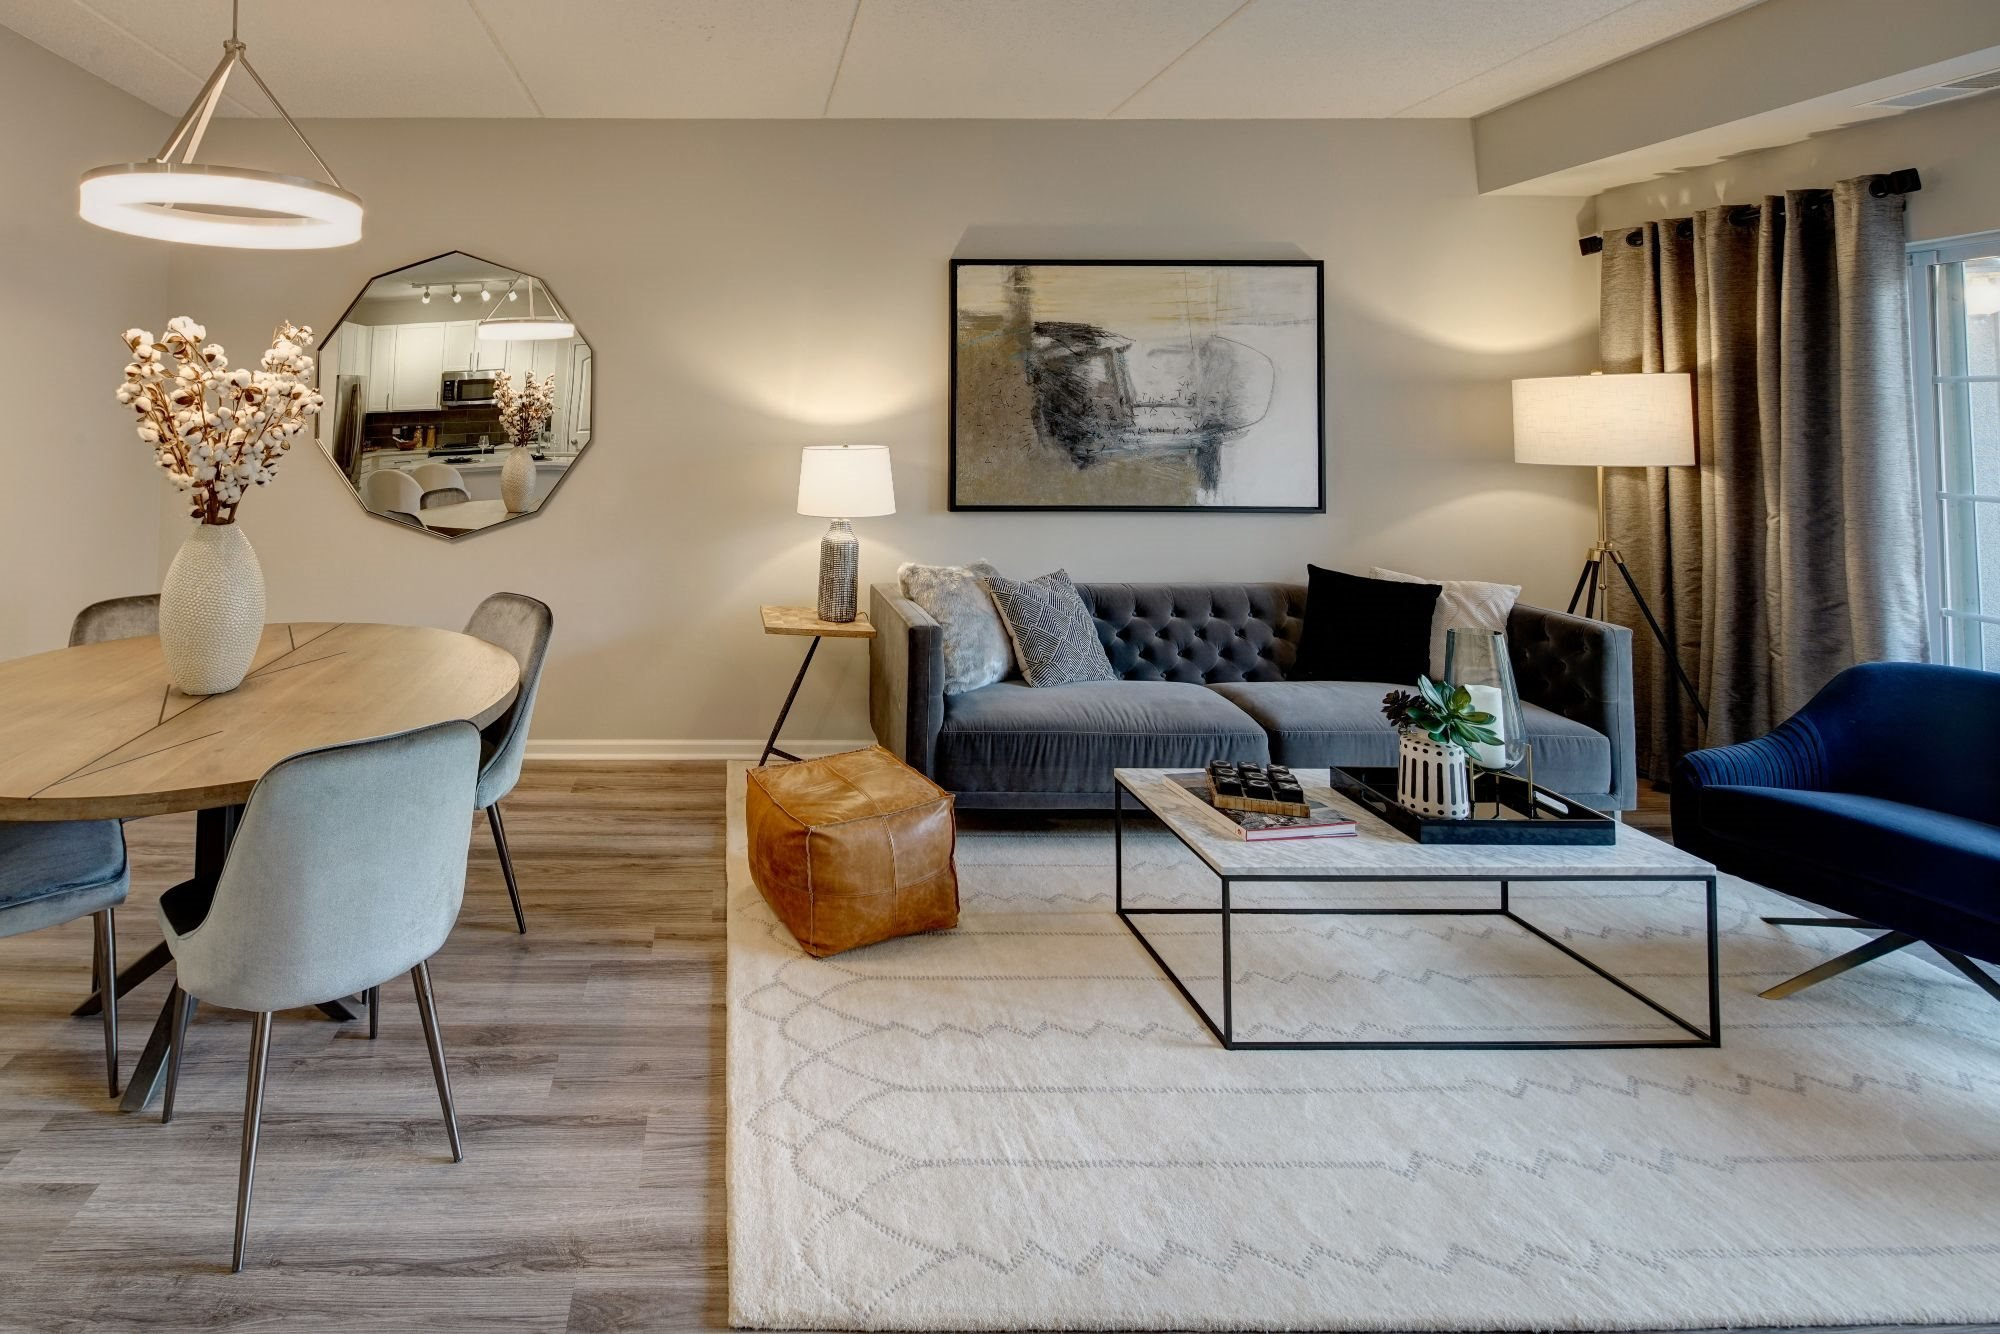 Classic Living Room Design at The MilTon Luxury Apartments, Vernon Hills, IL, 60061